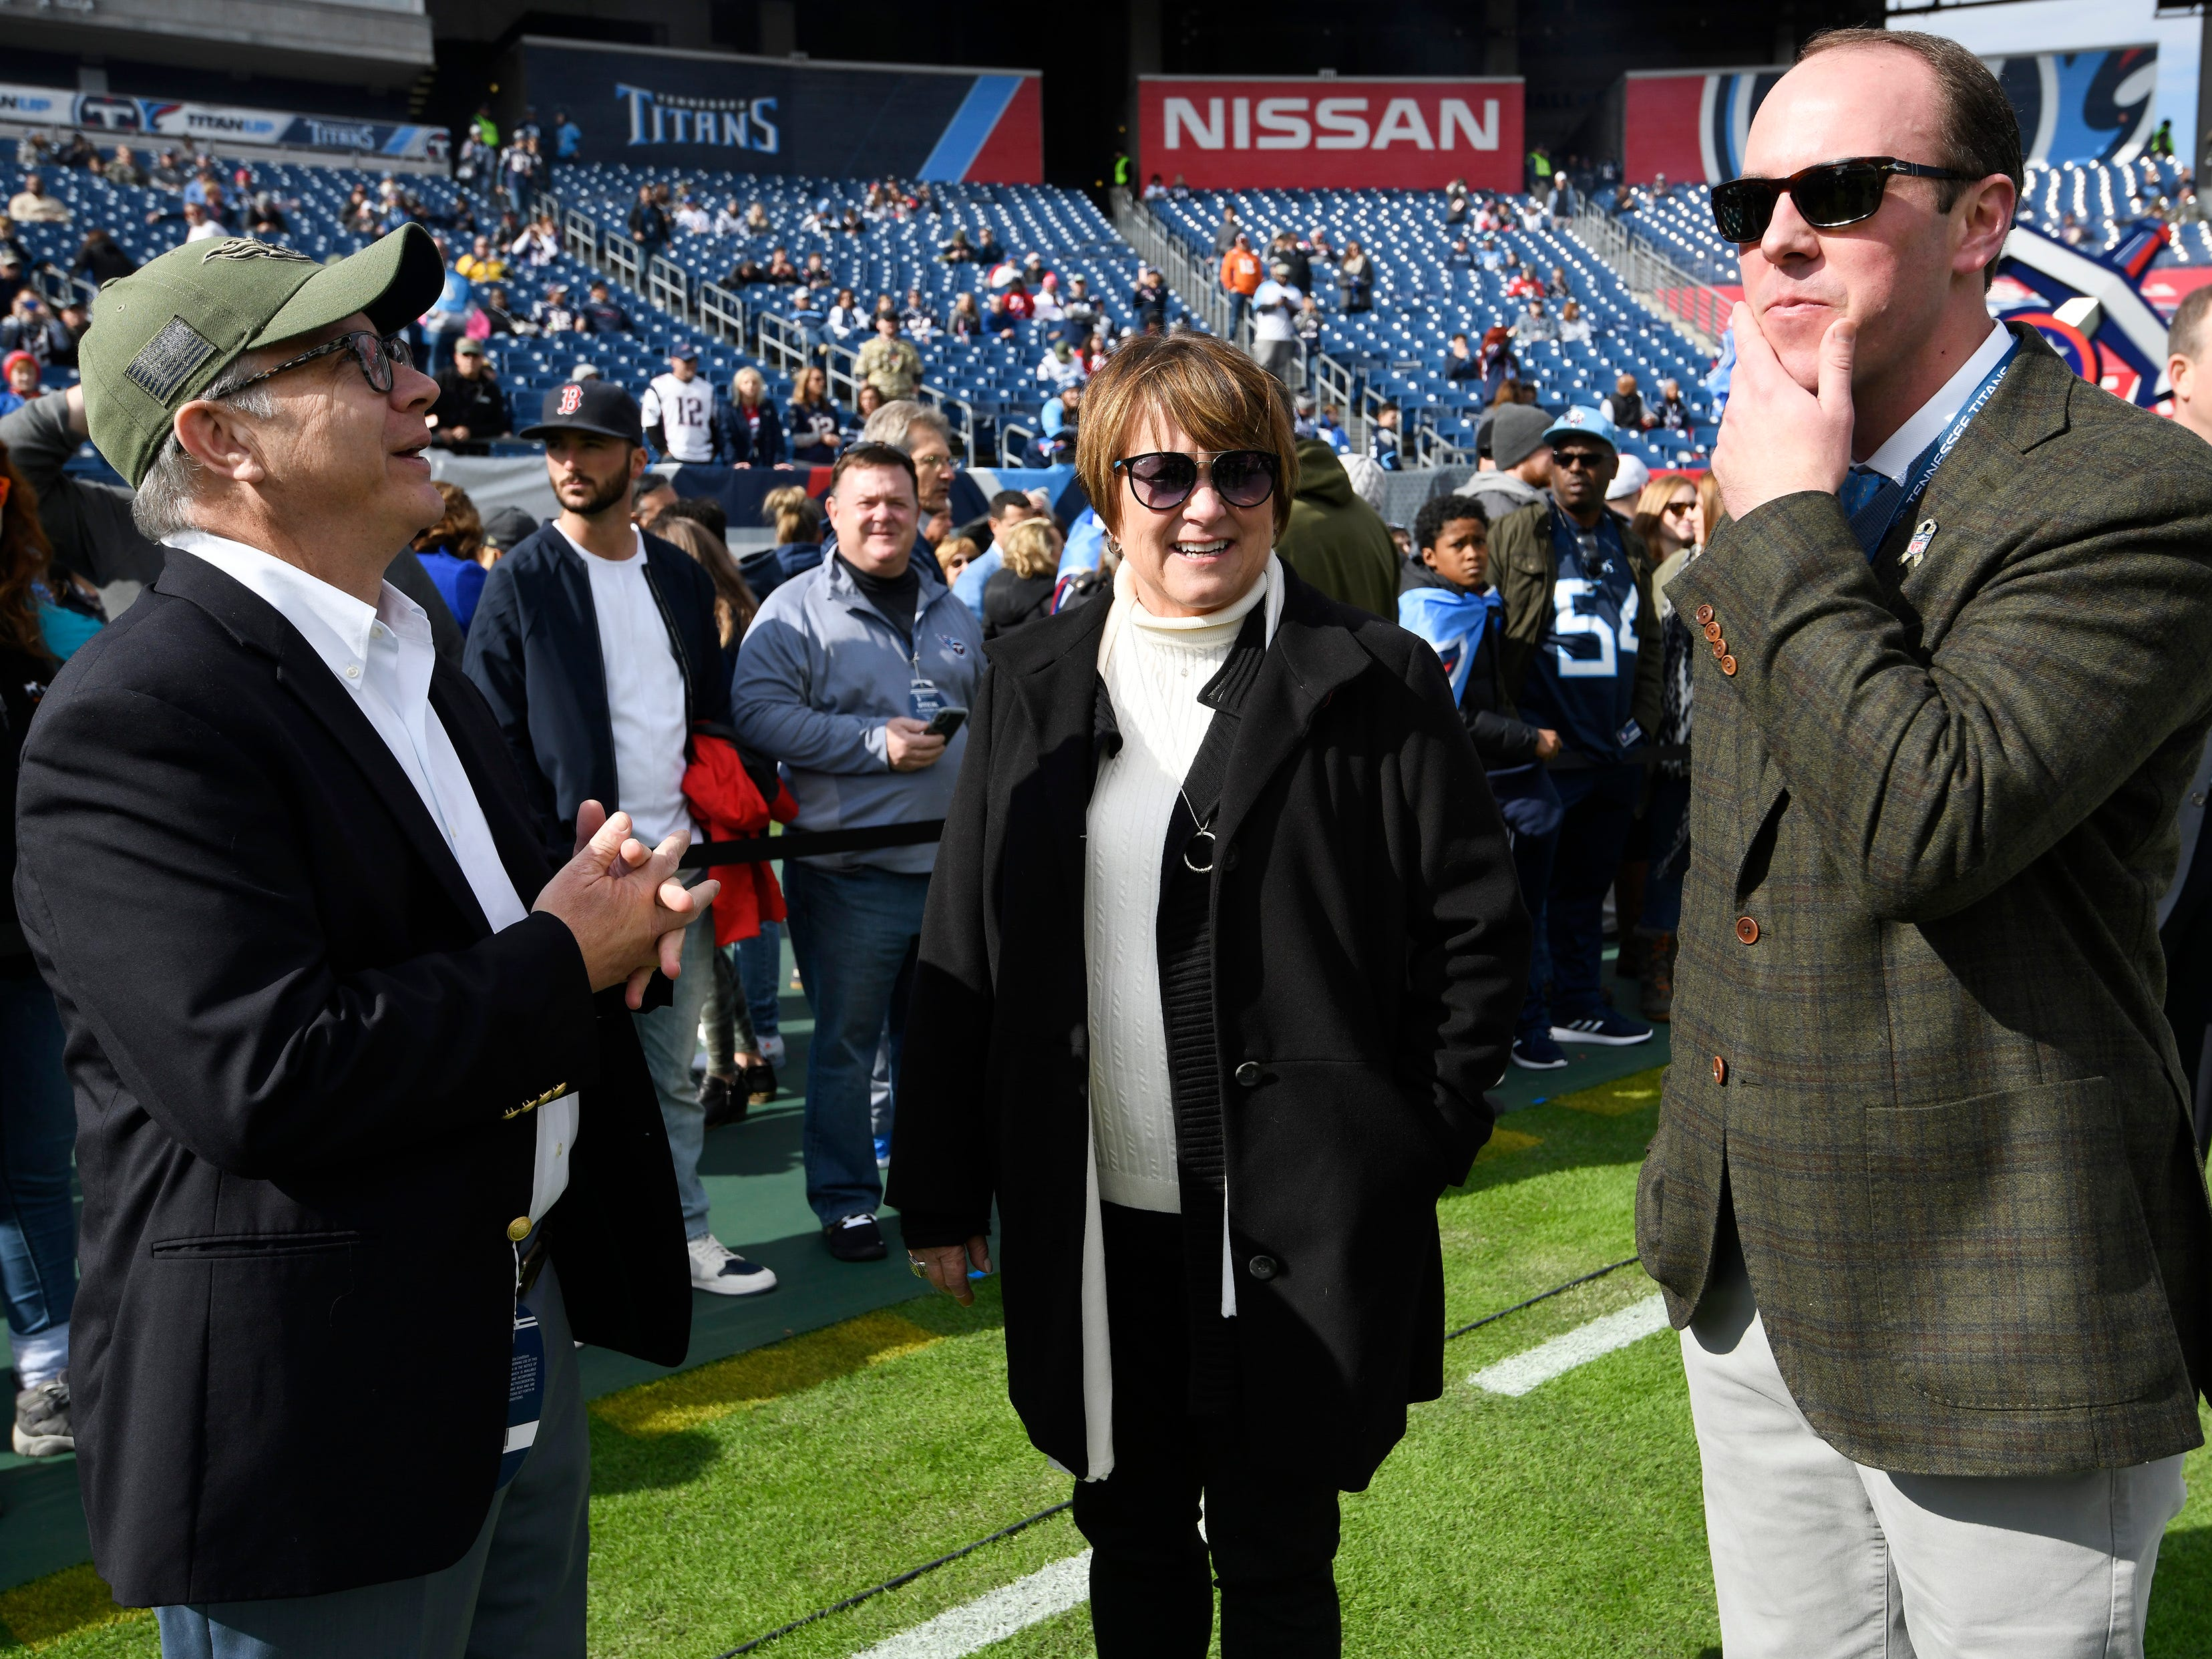 Nashville Mayor David Briley chats with Titans owners Amy Adams Strunk and her nephew Kenneth Adams IV before the game at Nissan Stadium Sunday, Nov. 11, 2018, in Nashville, Tenn.